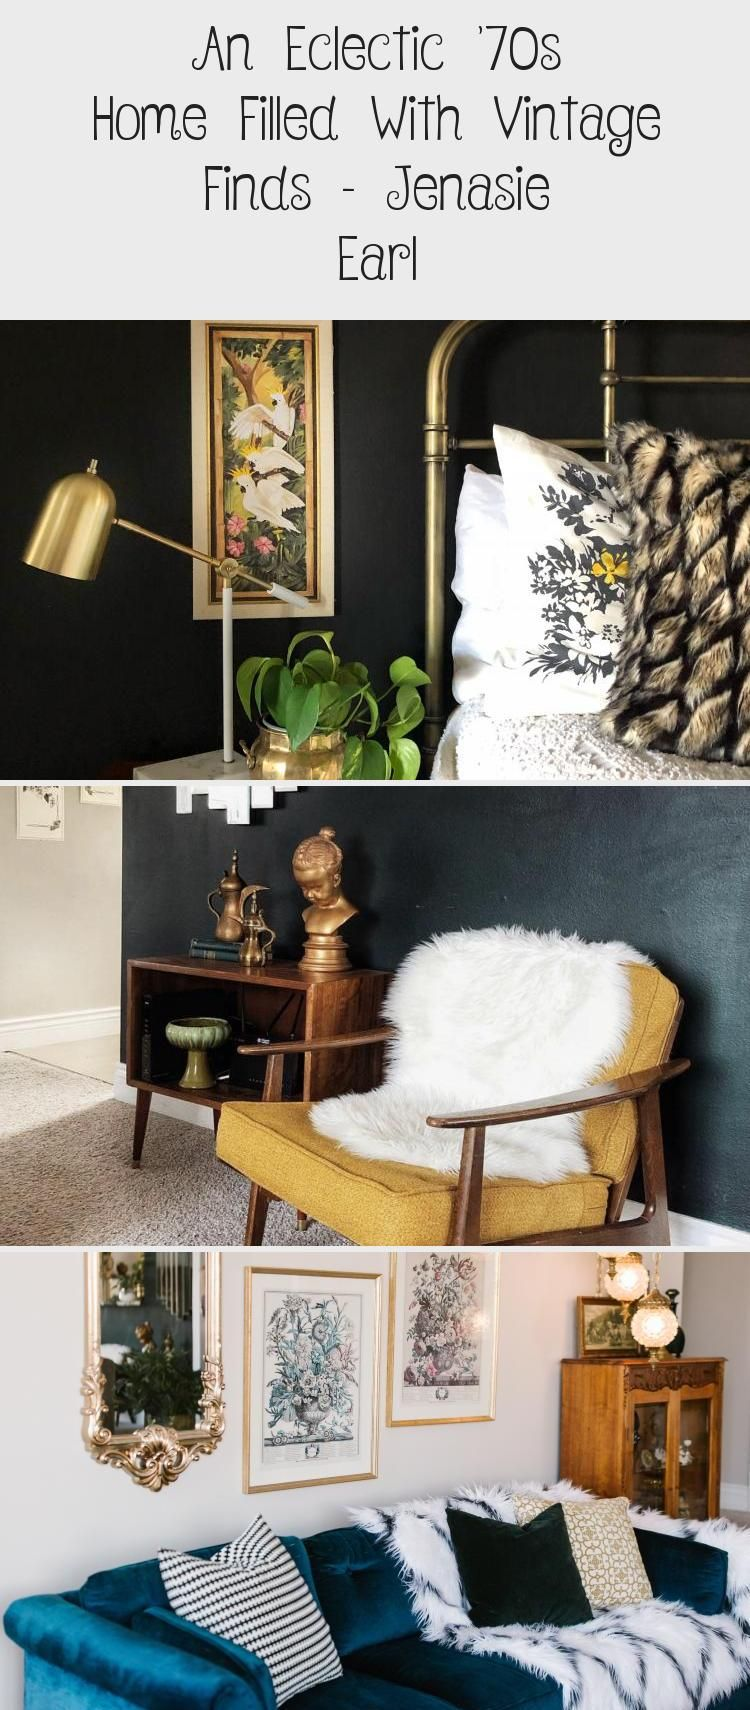 Great guest room. An Eclectic '70s Home Filled With Vintage Finds - Jenasie Earl | Dark decor bedroom styled with vintage mirrors and lighting to create an asymmetrical arrangement to create more interest. #bedroomdecor #bedroomideas #eclecticbedroom #eclecticdecor #eclecticinteriors #interiorinspo #interiordesign #homedecor #mirrors #vintagedecor #housetour #bedroomdesign #darkdecor #vintagebedroom #interiordecor #eclectichome #bedroomdecorForYoungAdults #Traditionalbedroomdecor #bedroomdecorDI